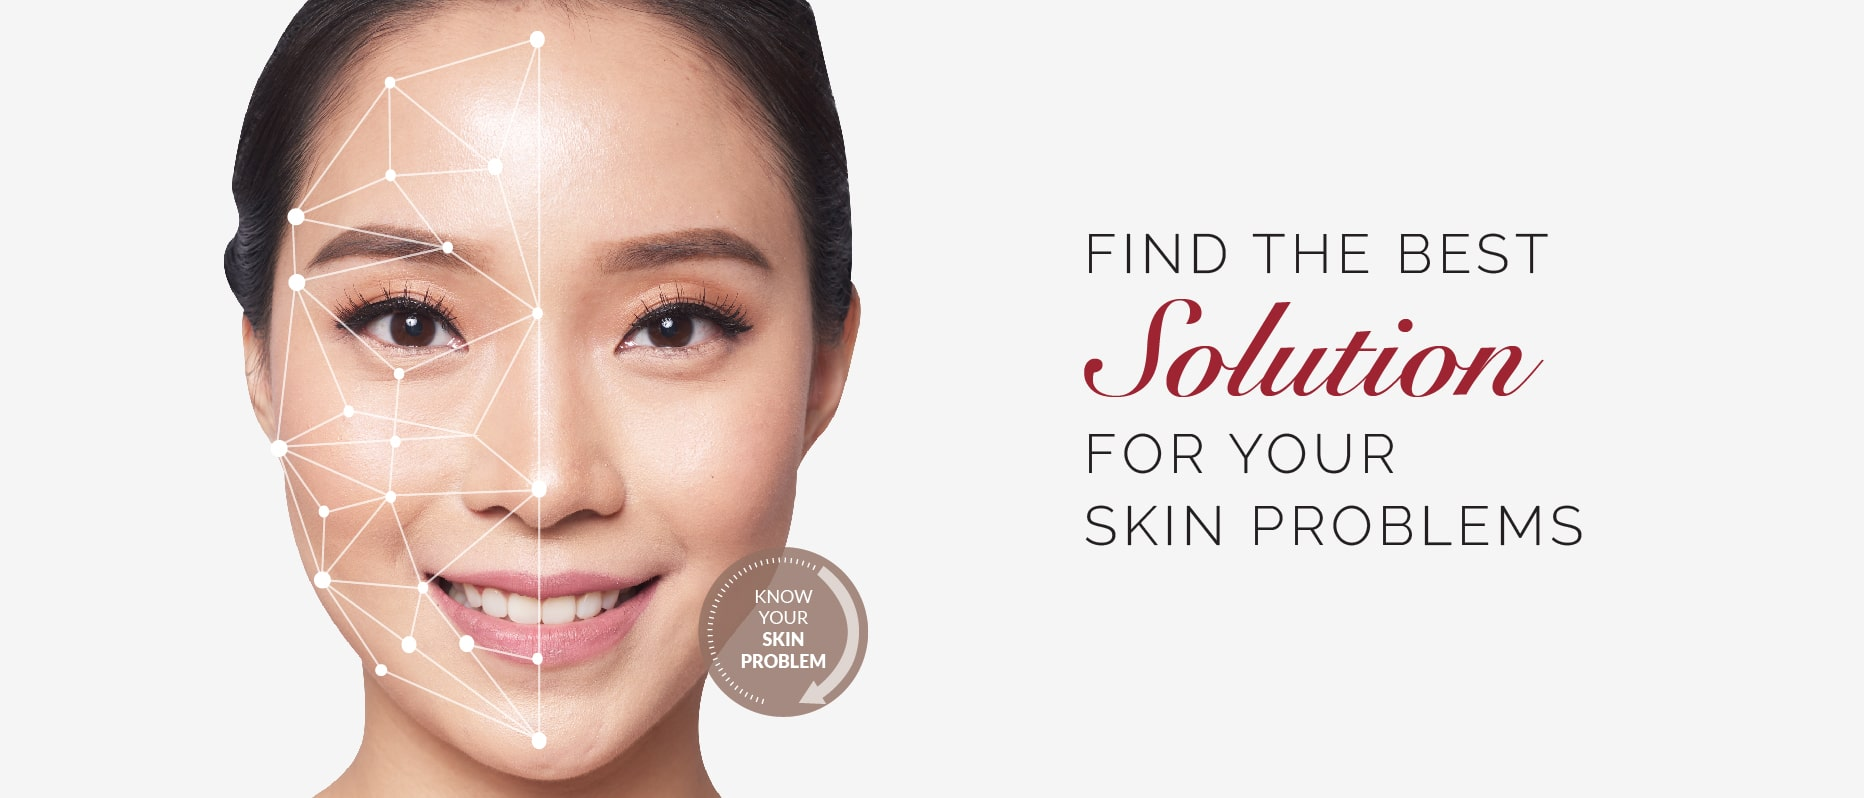 Find the best Solution for your skin problems